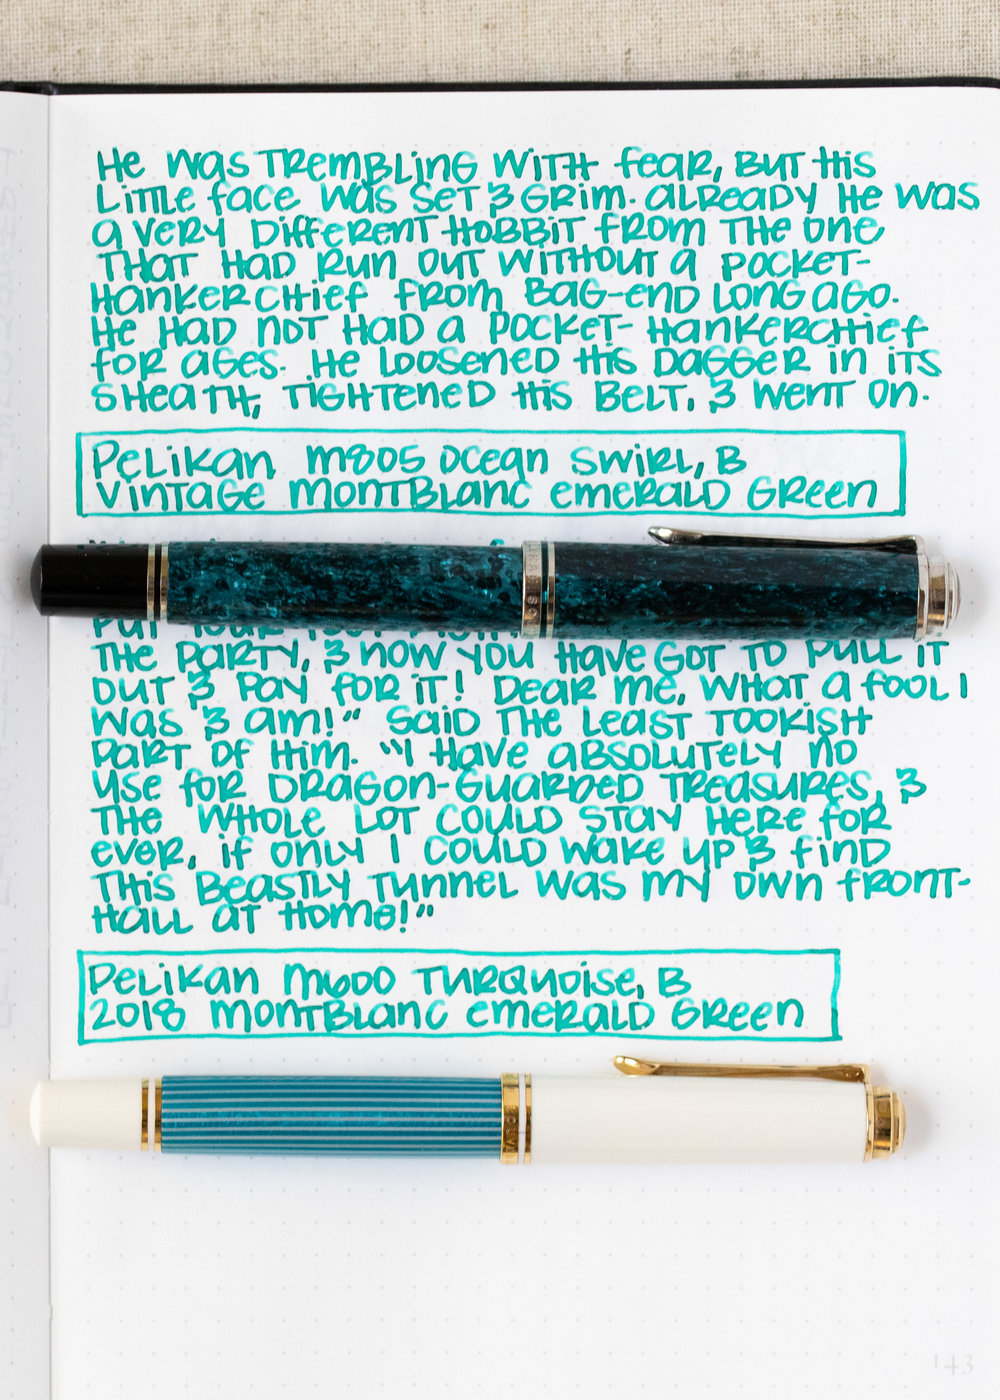 Longer Writing: - I used a Pelikans with broad nibs on Tomoe River paper. The inks had average flows. Both versions are very similar in writing.